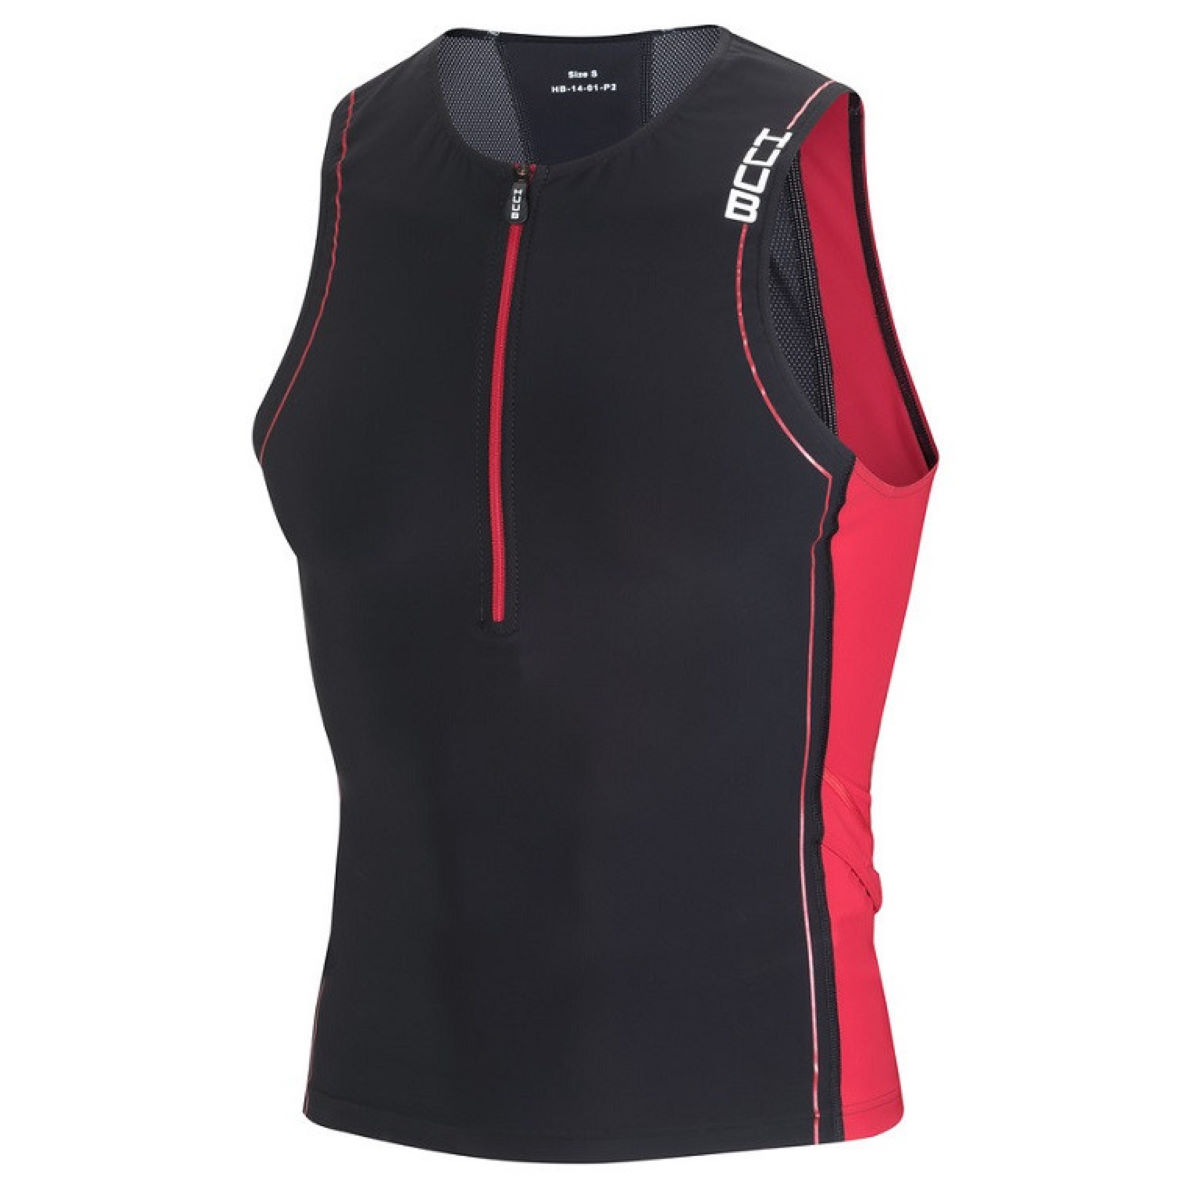 Haut de triathlon HUUB Core - M Noir/Rouge Hauts de triathlon